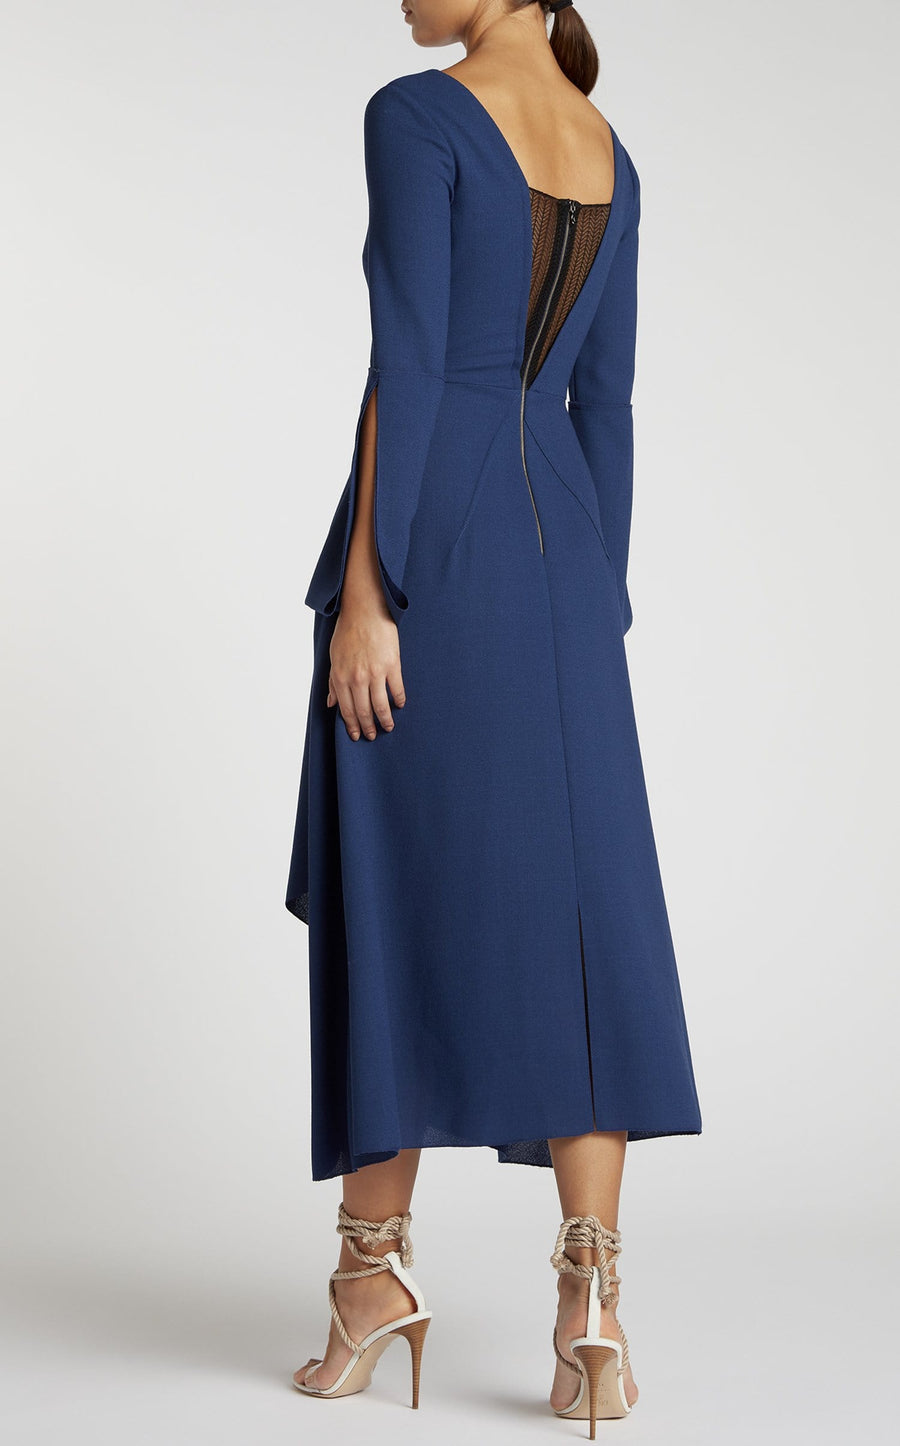 Oreti Dress In Capri Blue/Black from Roland Mouret